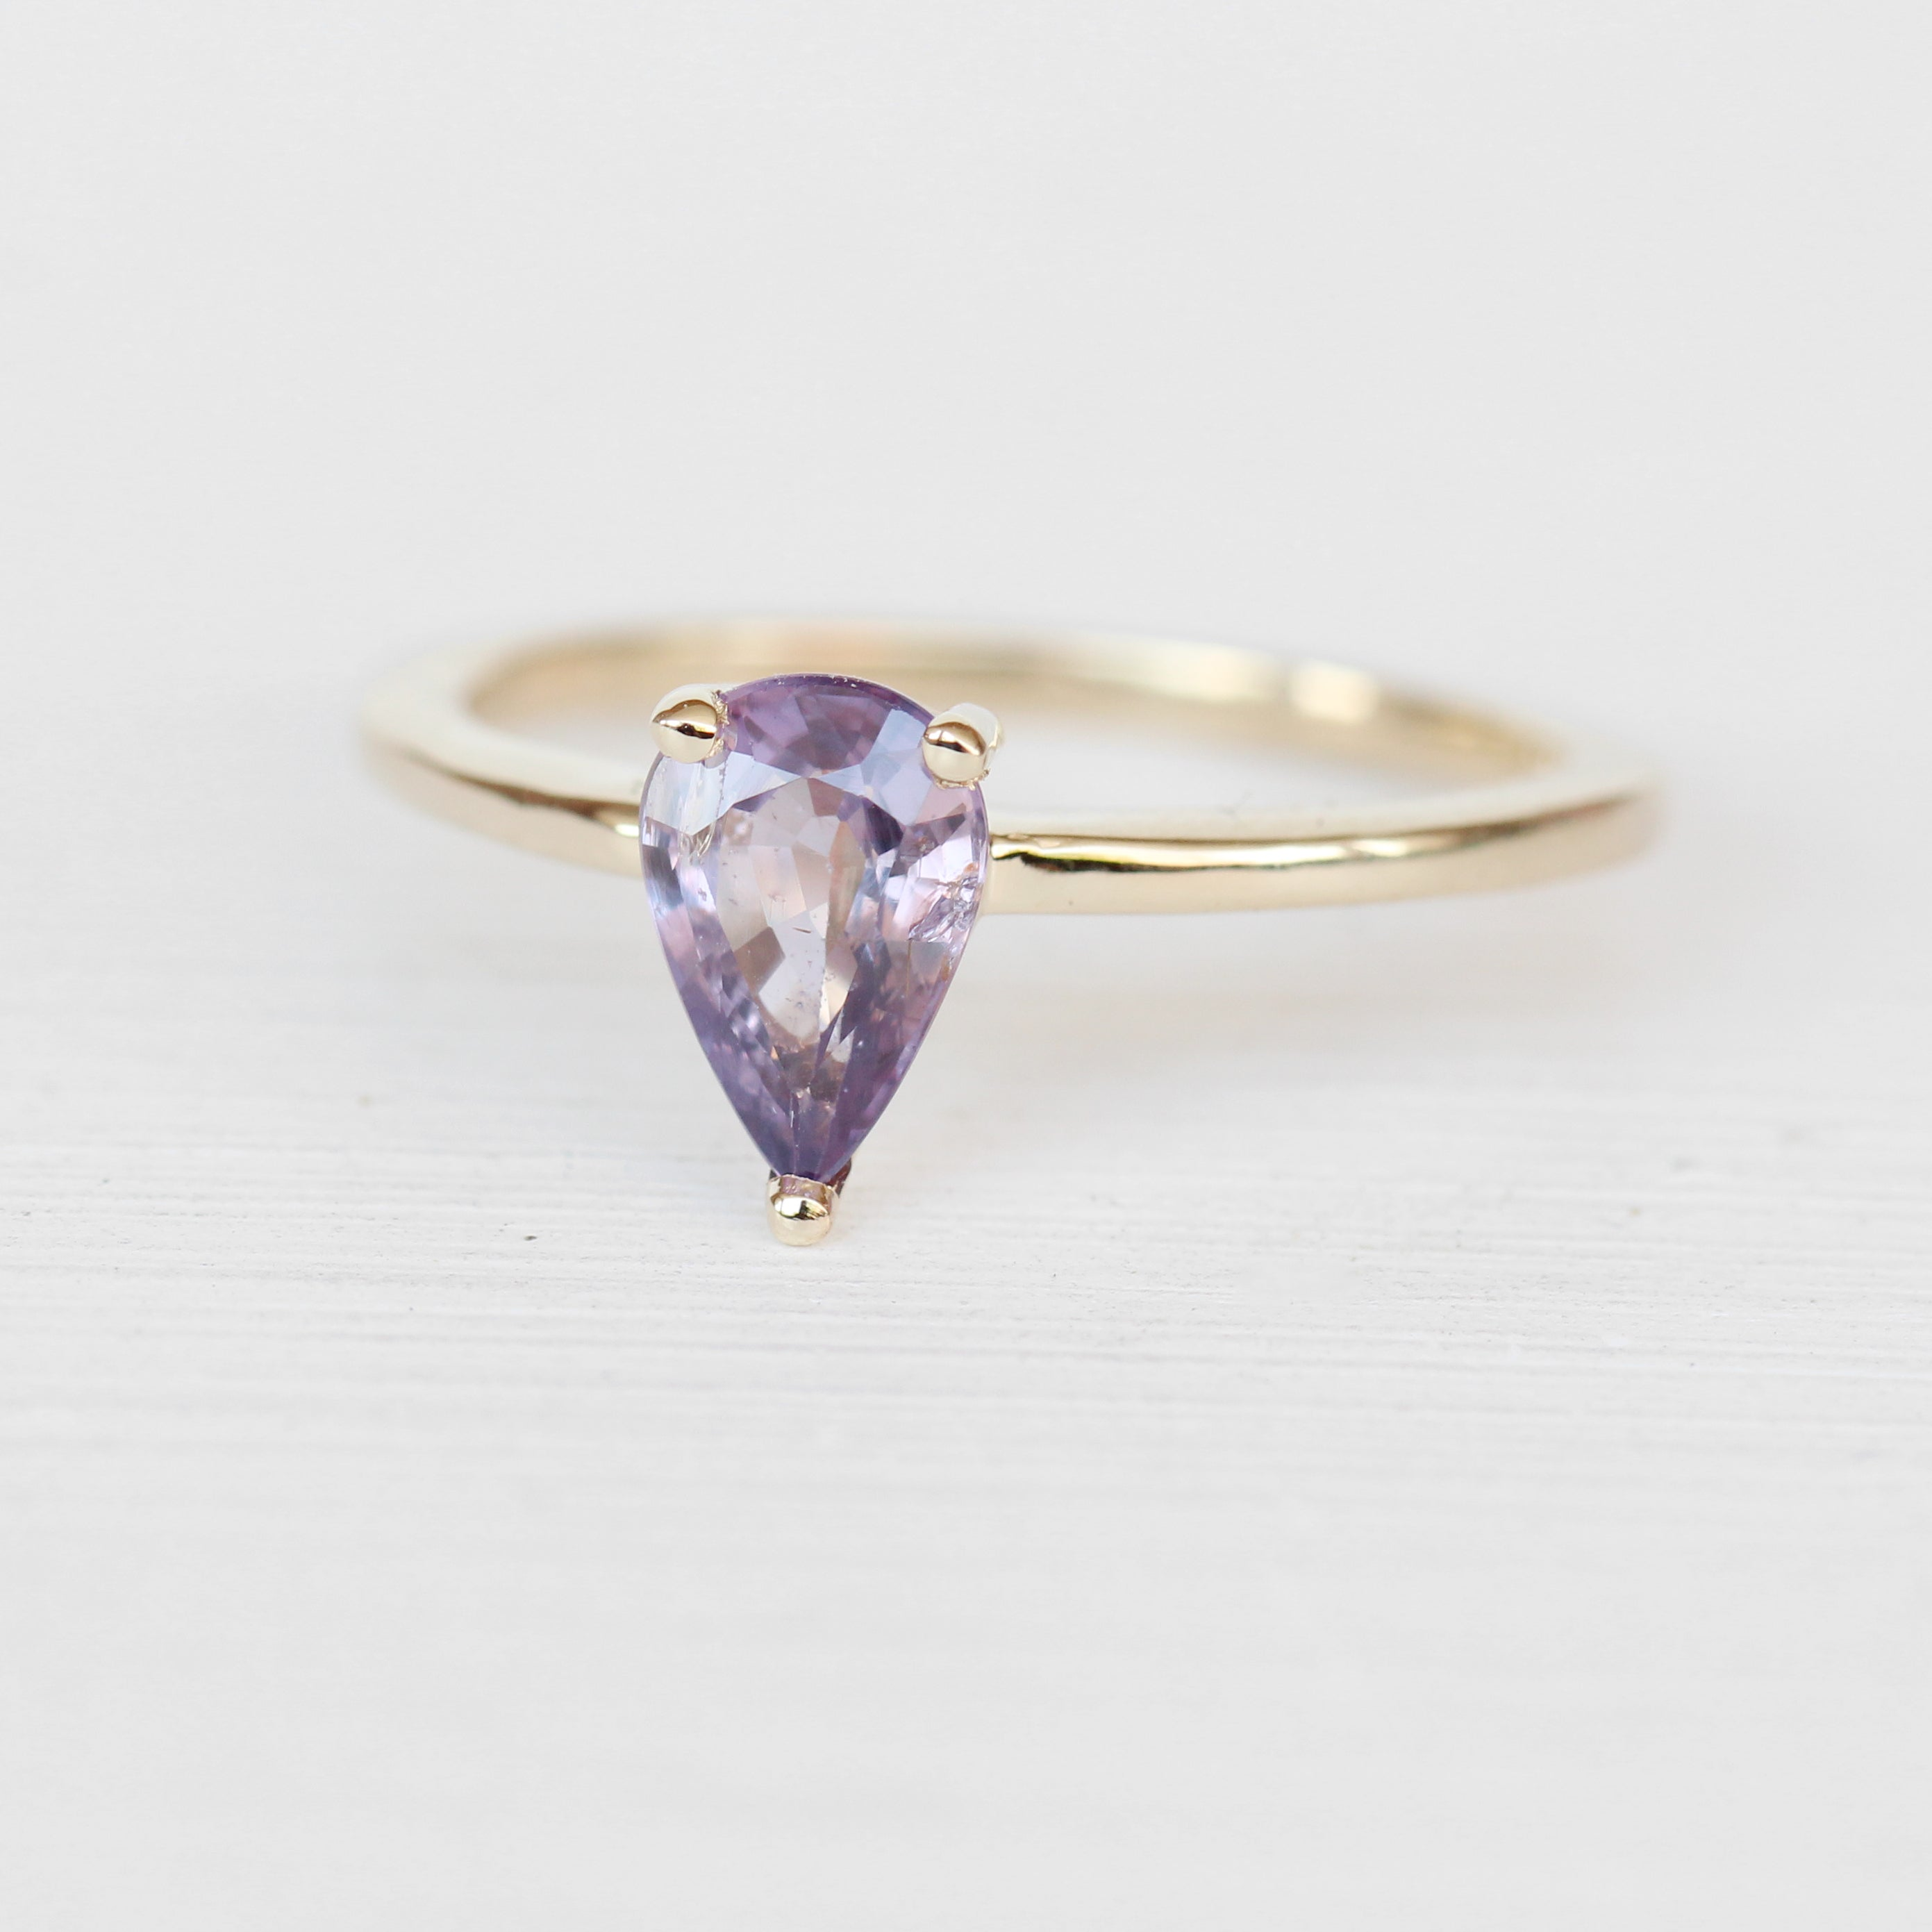 Ruthie Ring with a Pear Sapphire in 14k Yellow Gold - Ready to Size and Ship